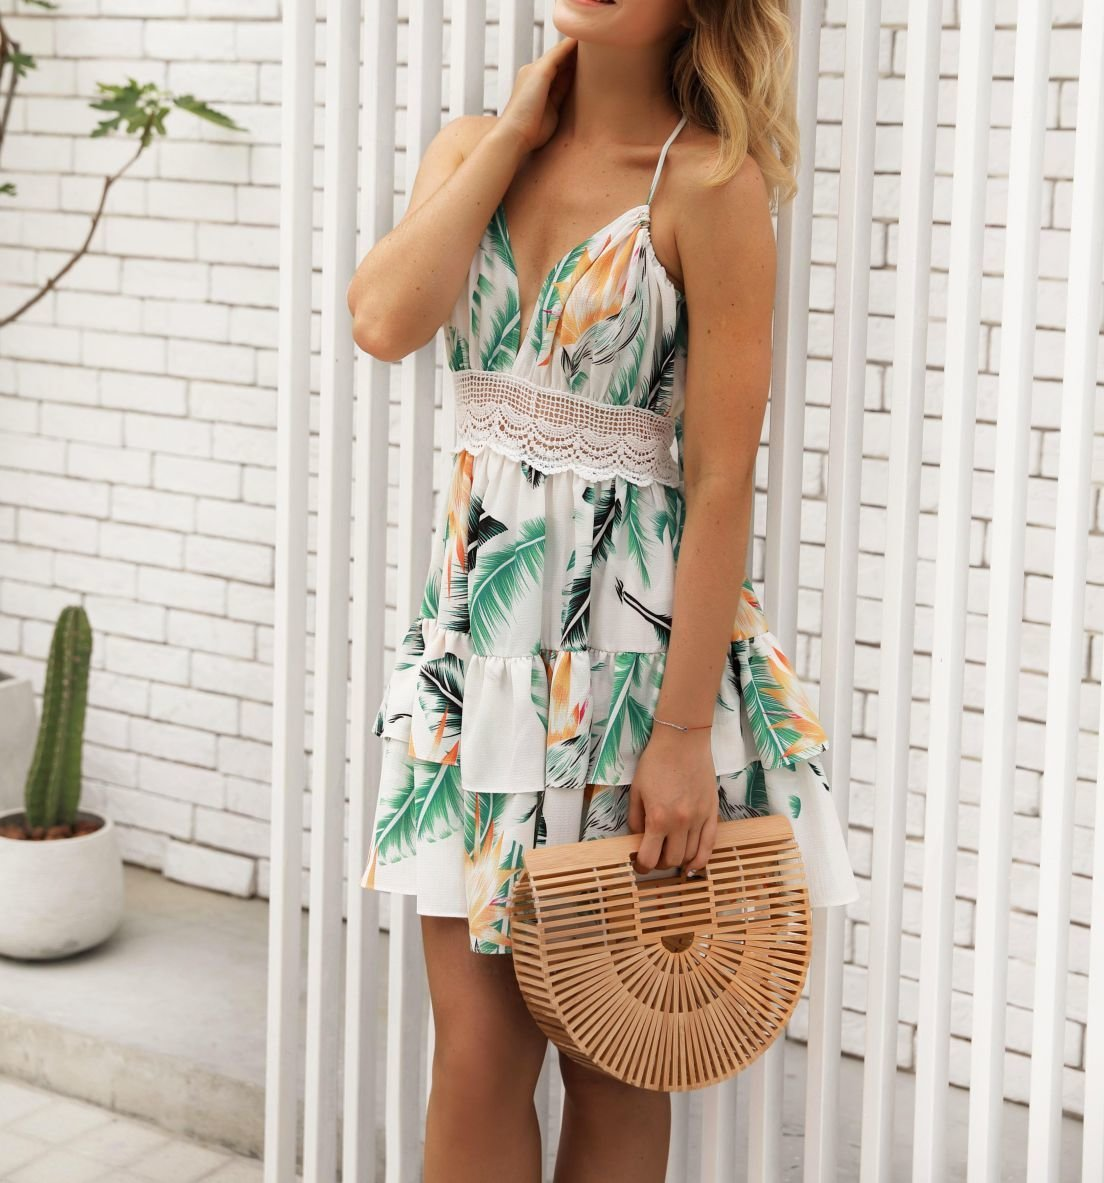 Ruffled Sun Dress with Lace Insert